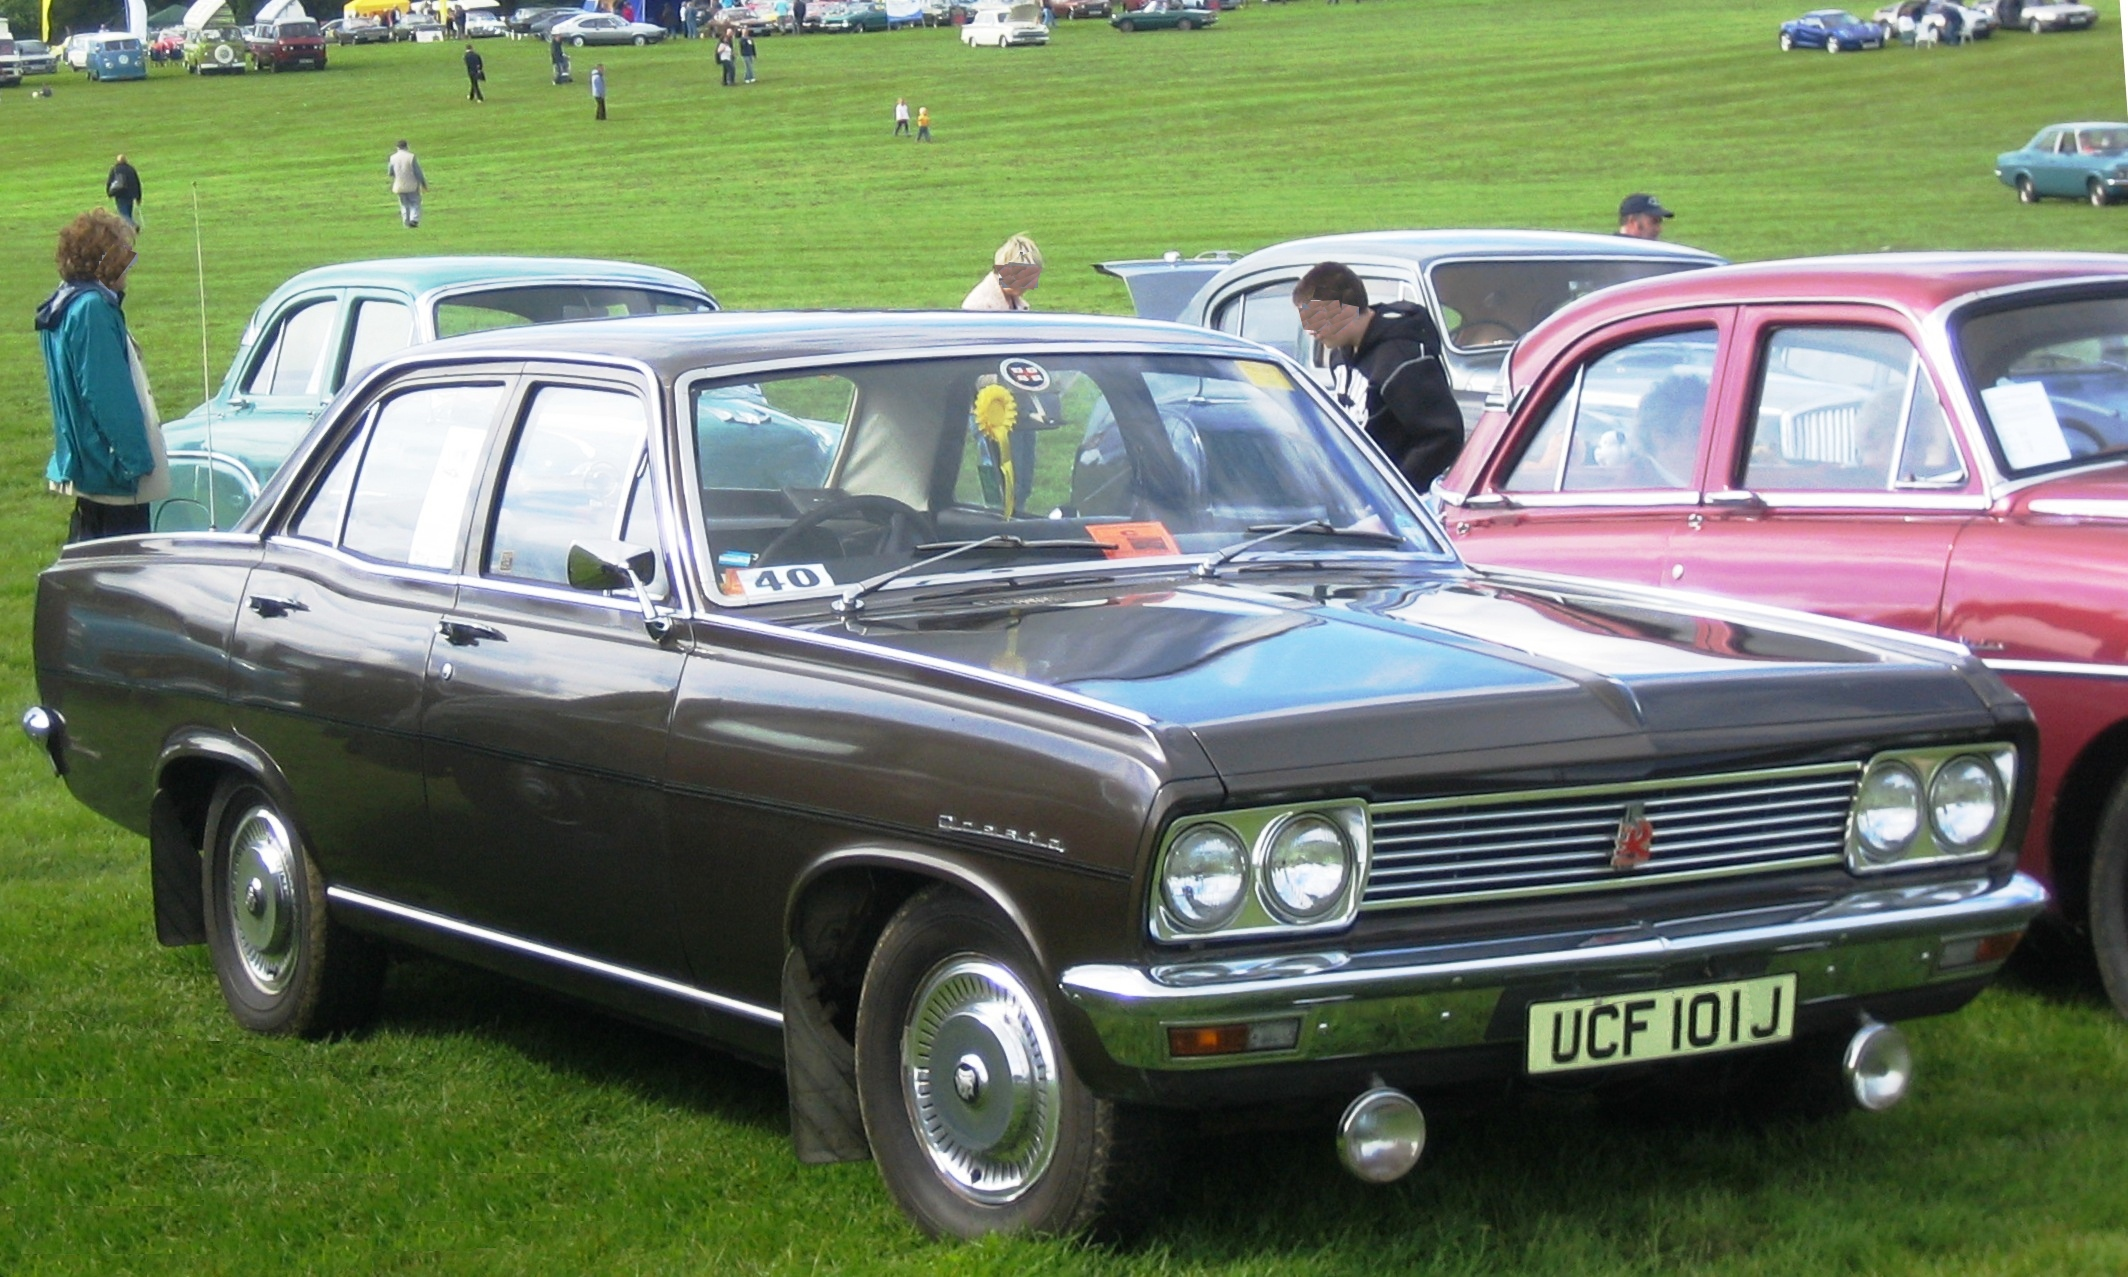 Vauxhall_Cresta_PC_license_plate_1970.jpg